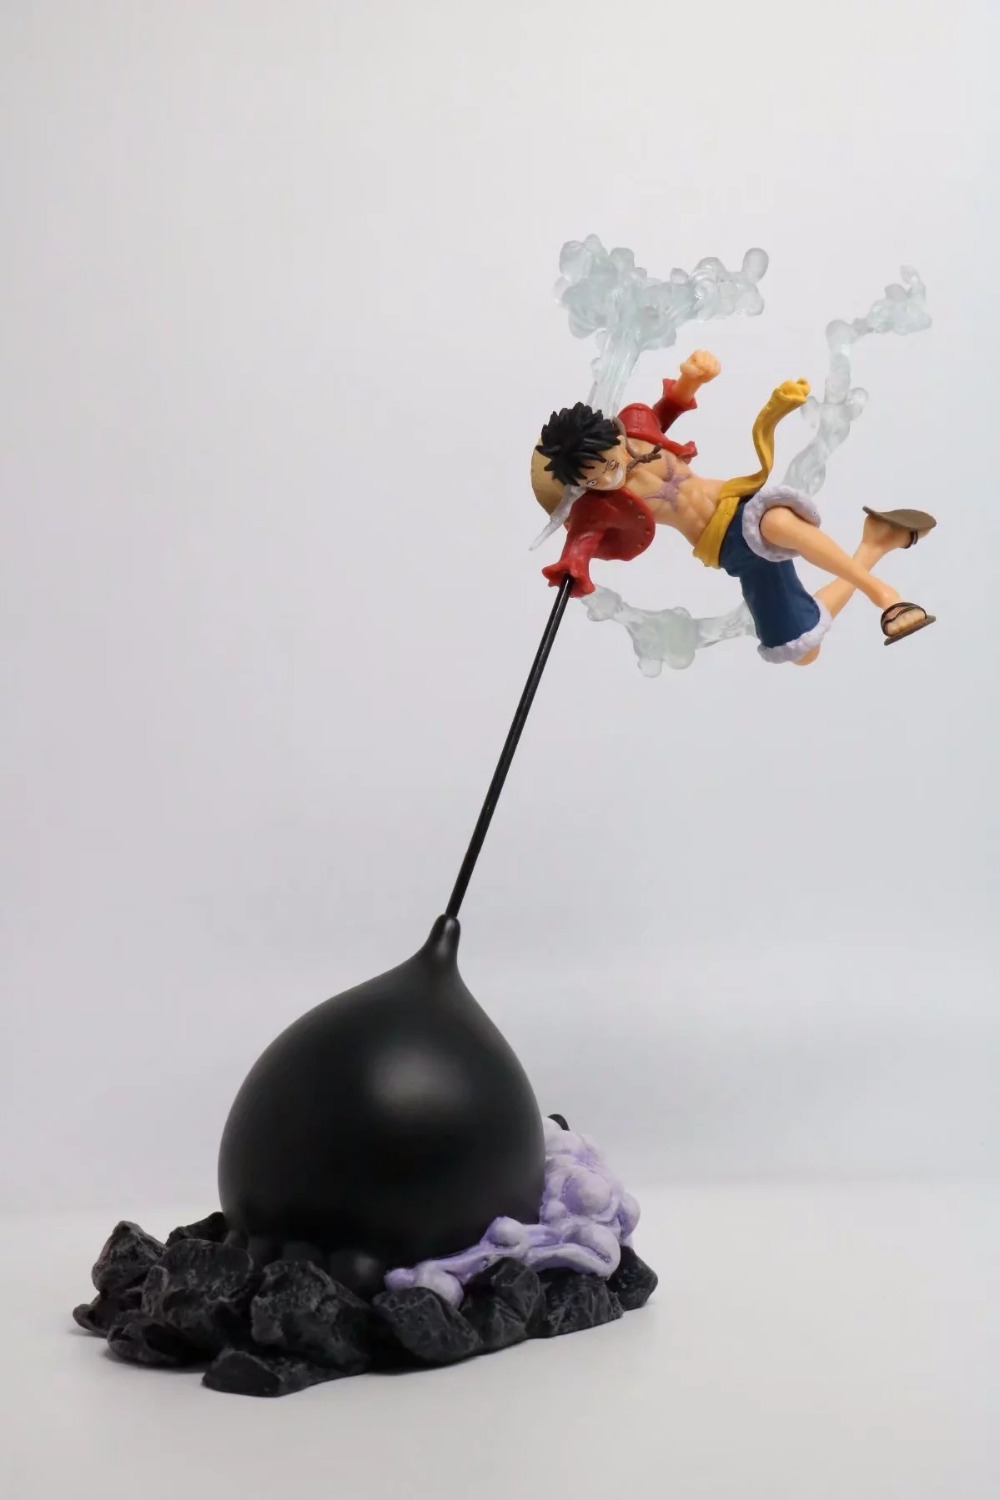 Hkxzm Anime 26cm One Piece Colosseum Gear Third Monkey D Luffy Pvc Figure Collectible Model Toy Toys & Hobbies